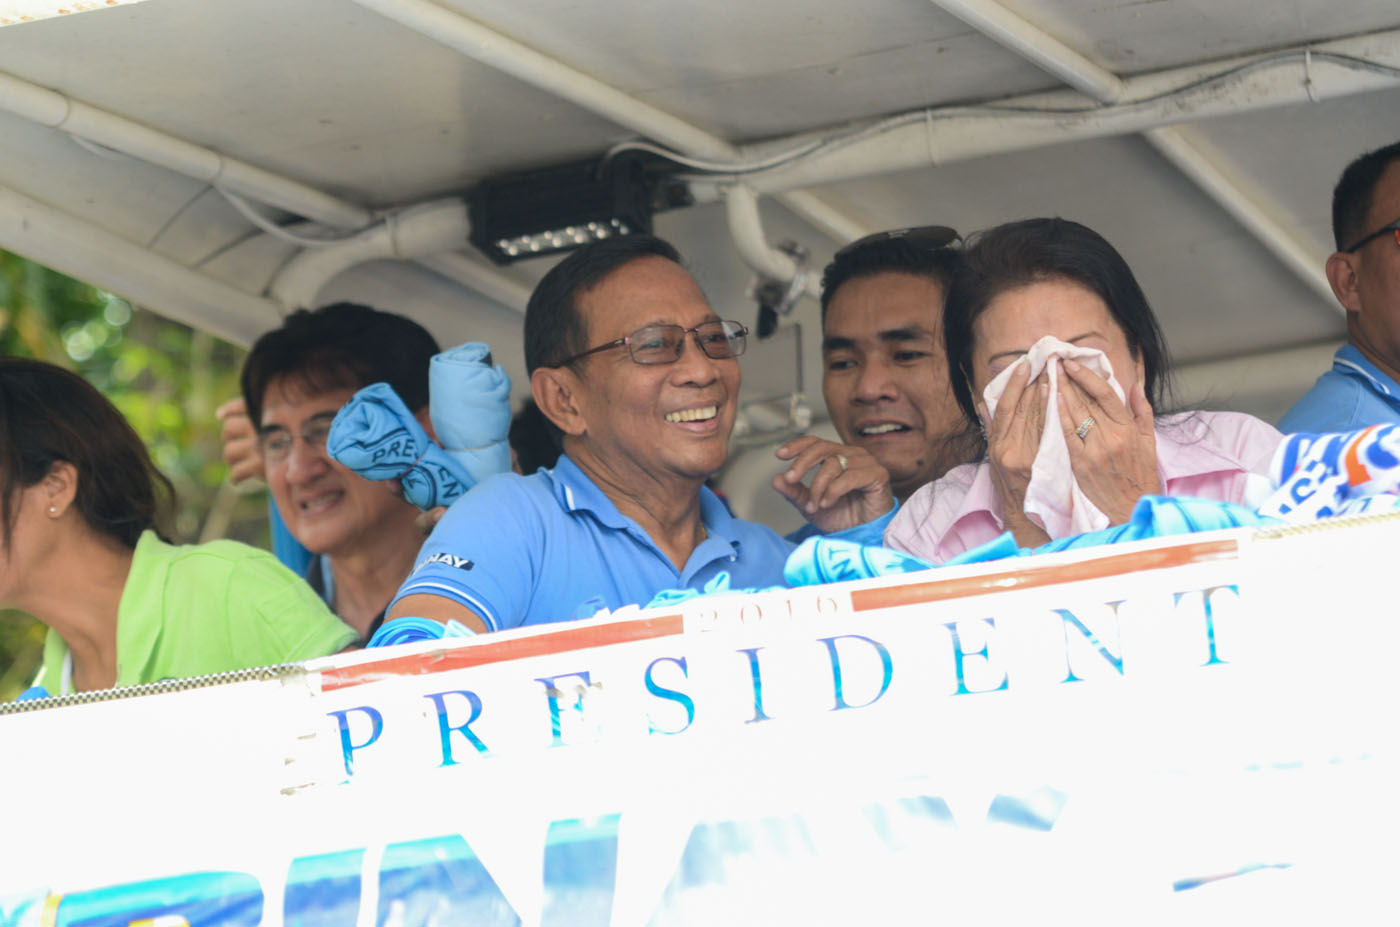 STILL SMILING. Binay flashes a smile even after spending hours on a motorcade around Nueva Ecija. Photo by Alecs Ongcal/Rappler